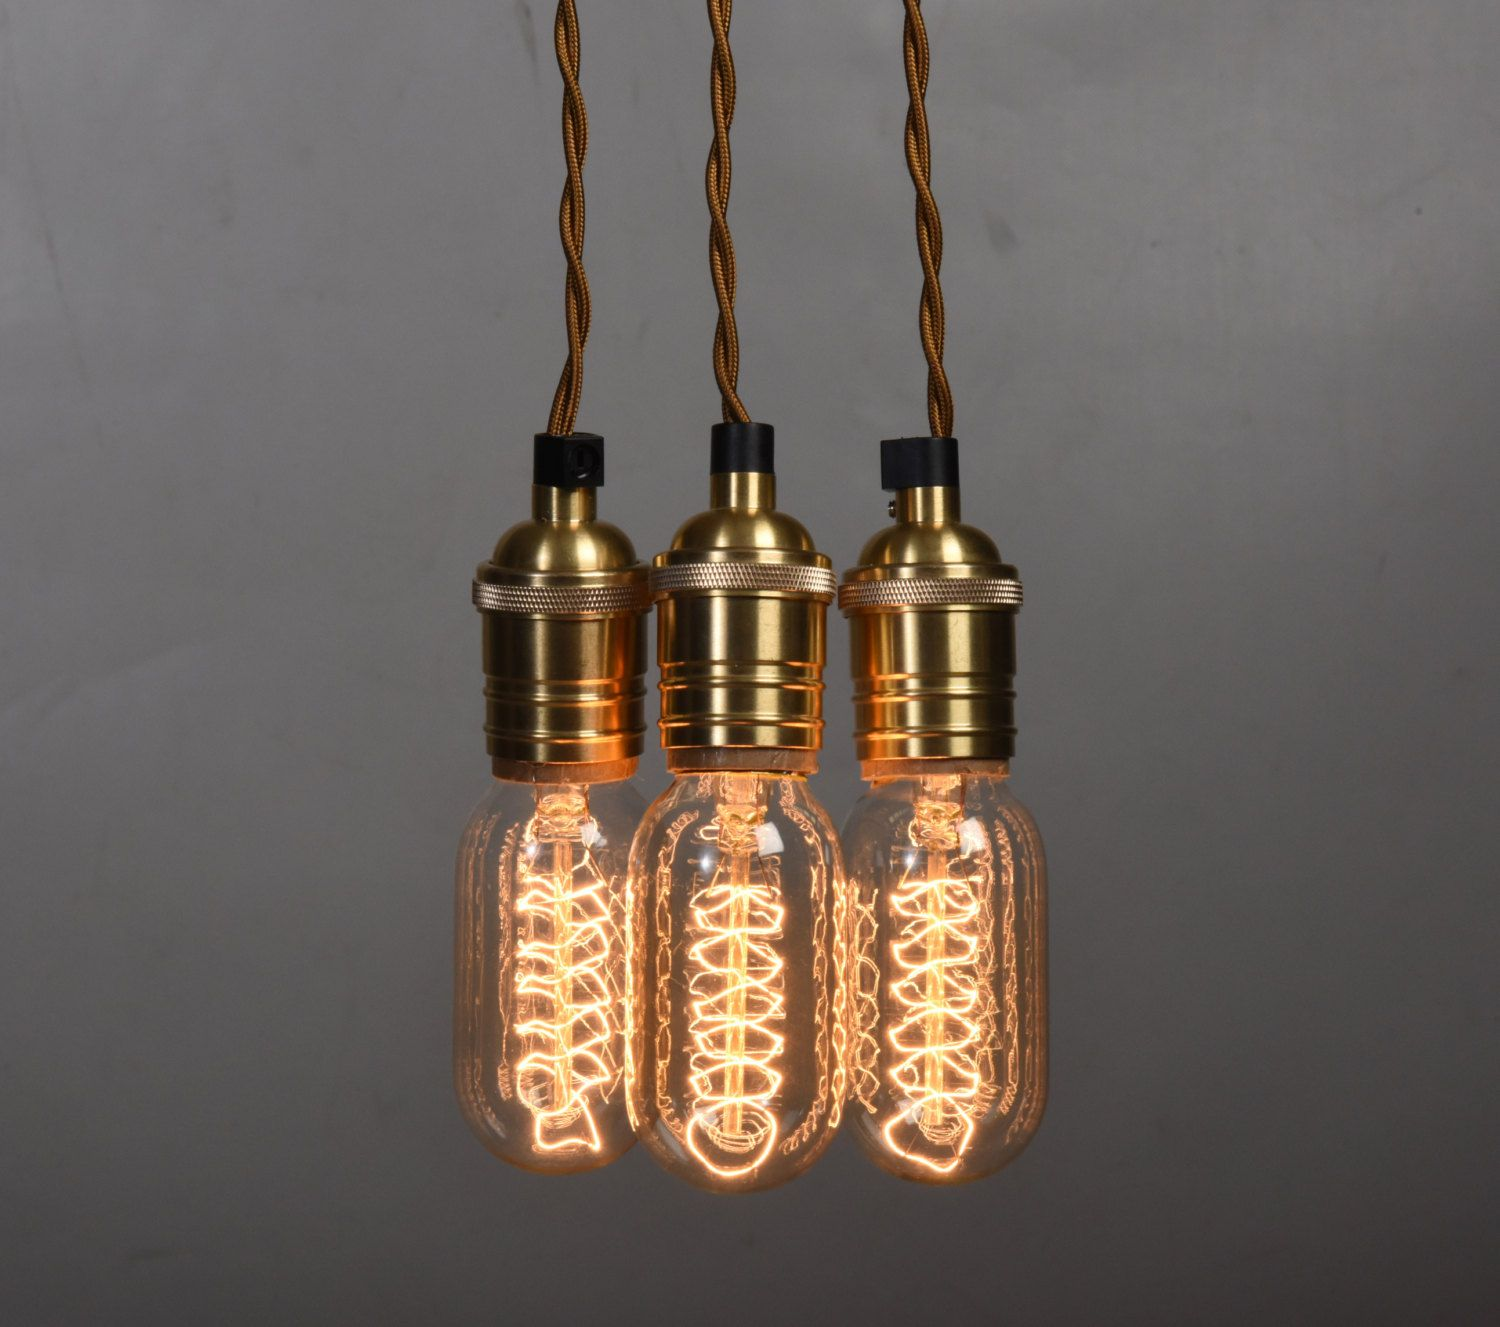 Twisted gold fabric cord edison style bulb cluster light with